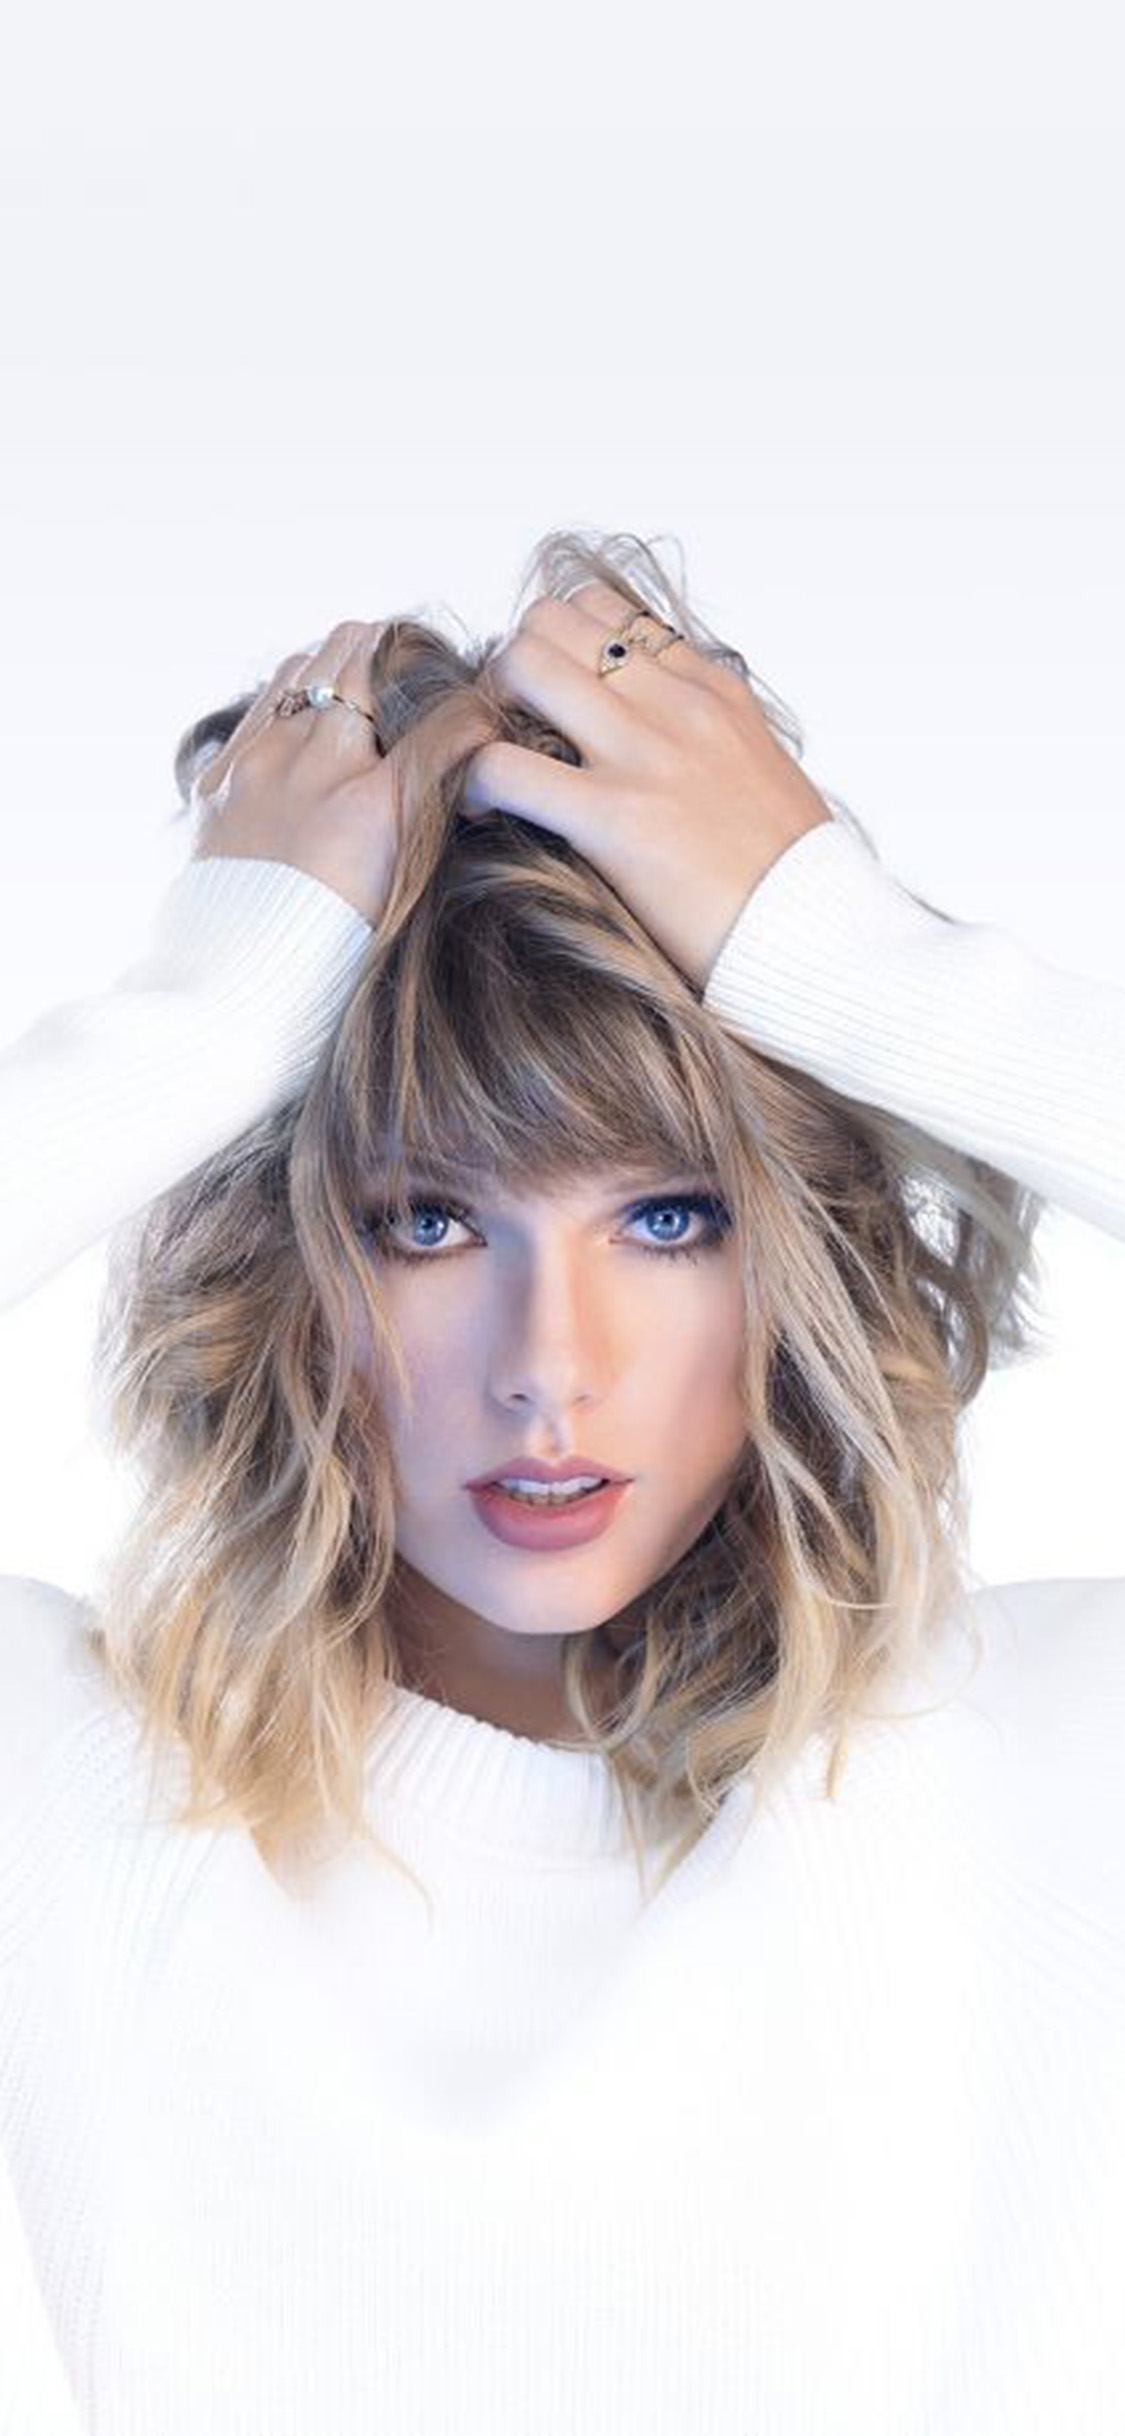 iPhonexpapers.com-Apple-iPhone-wallpaper-hr13-girl-taylor-swift-white-artist